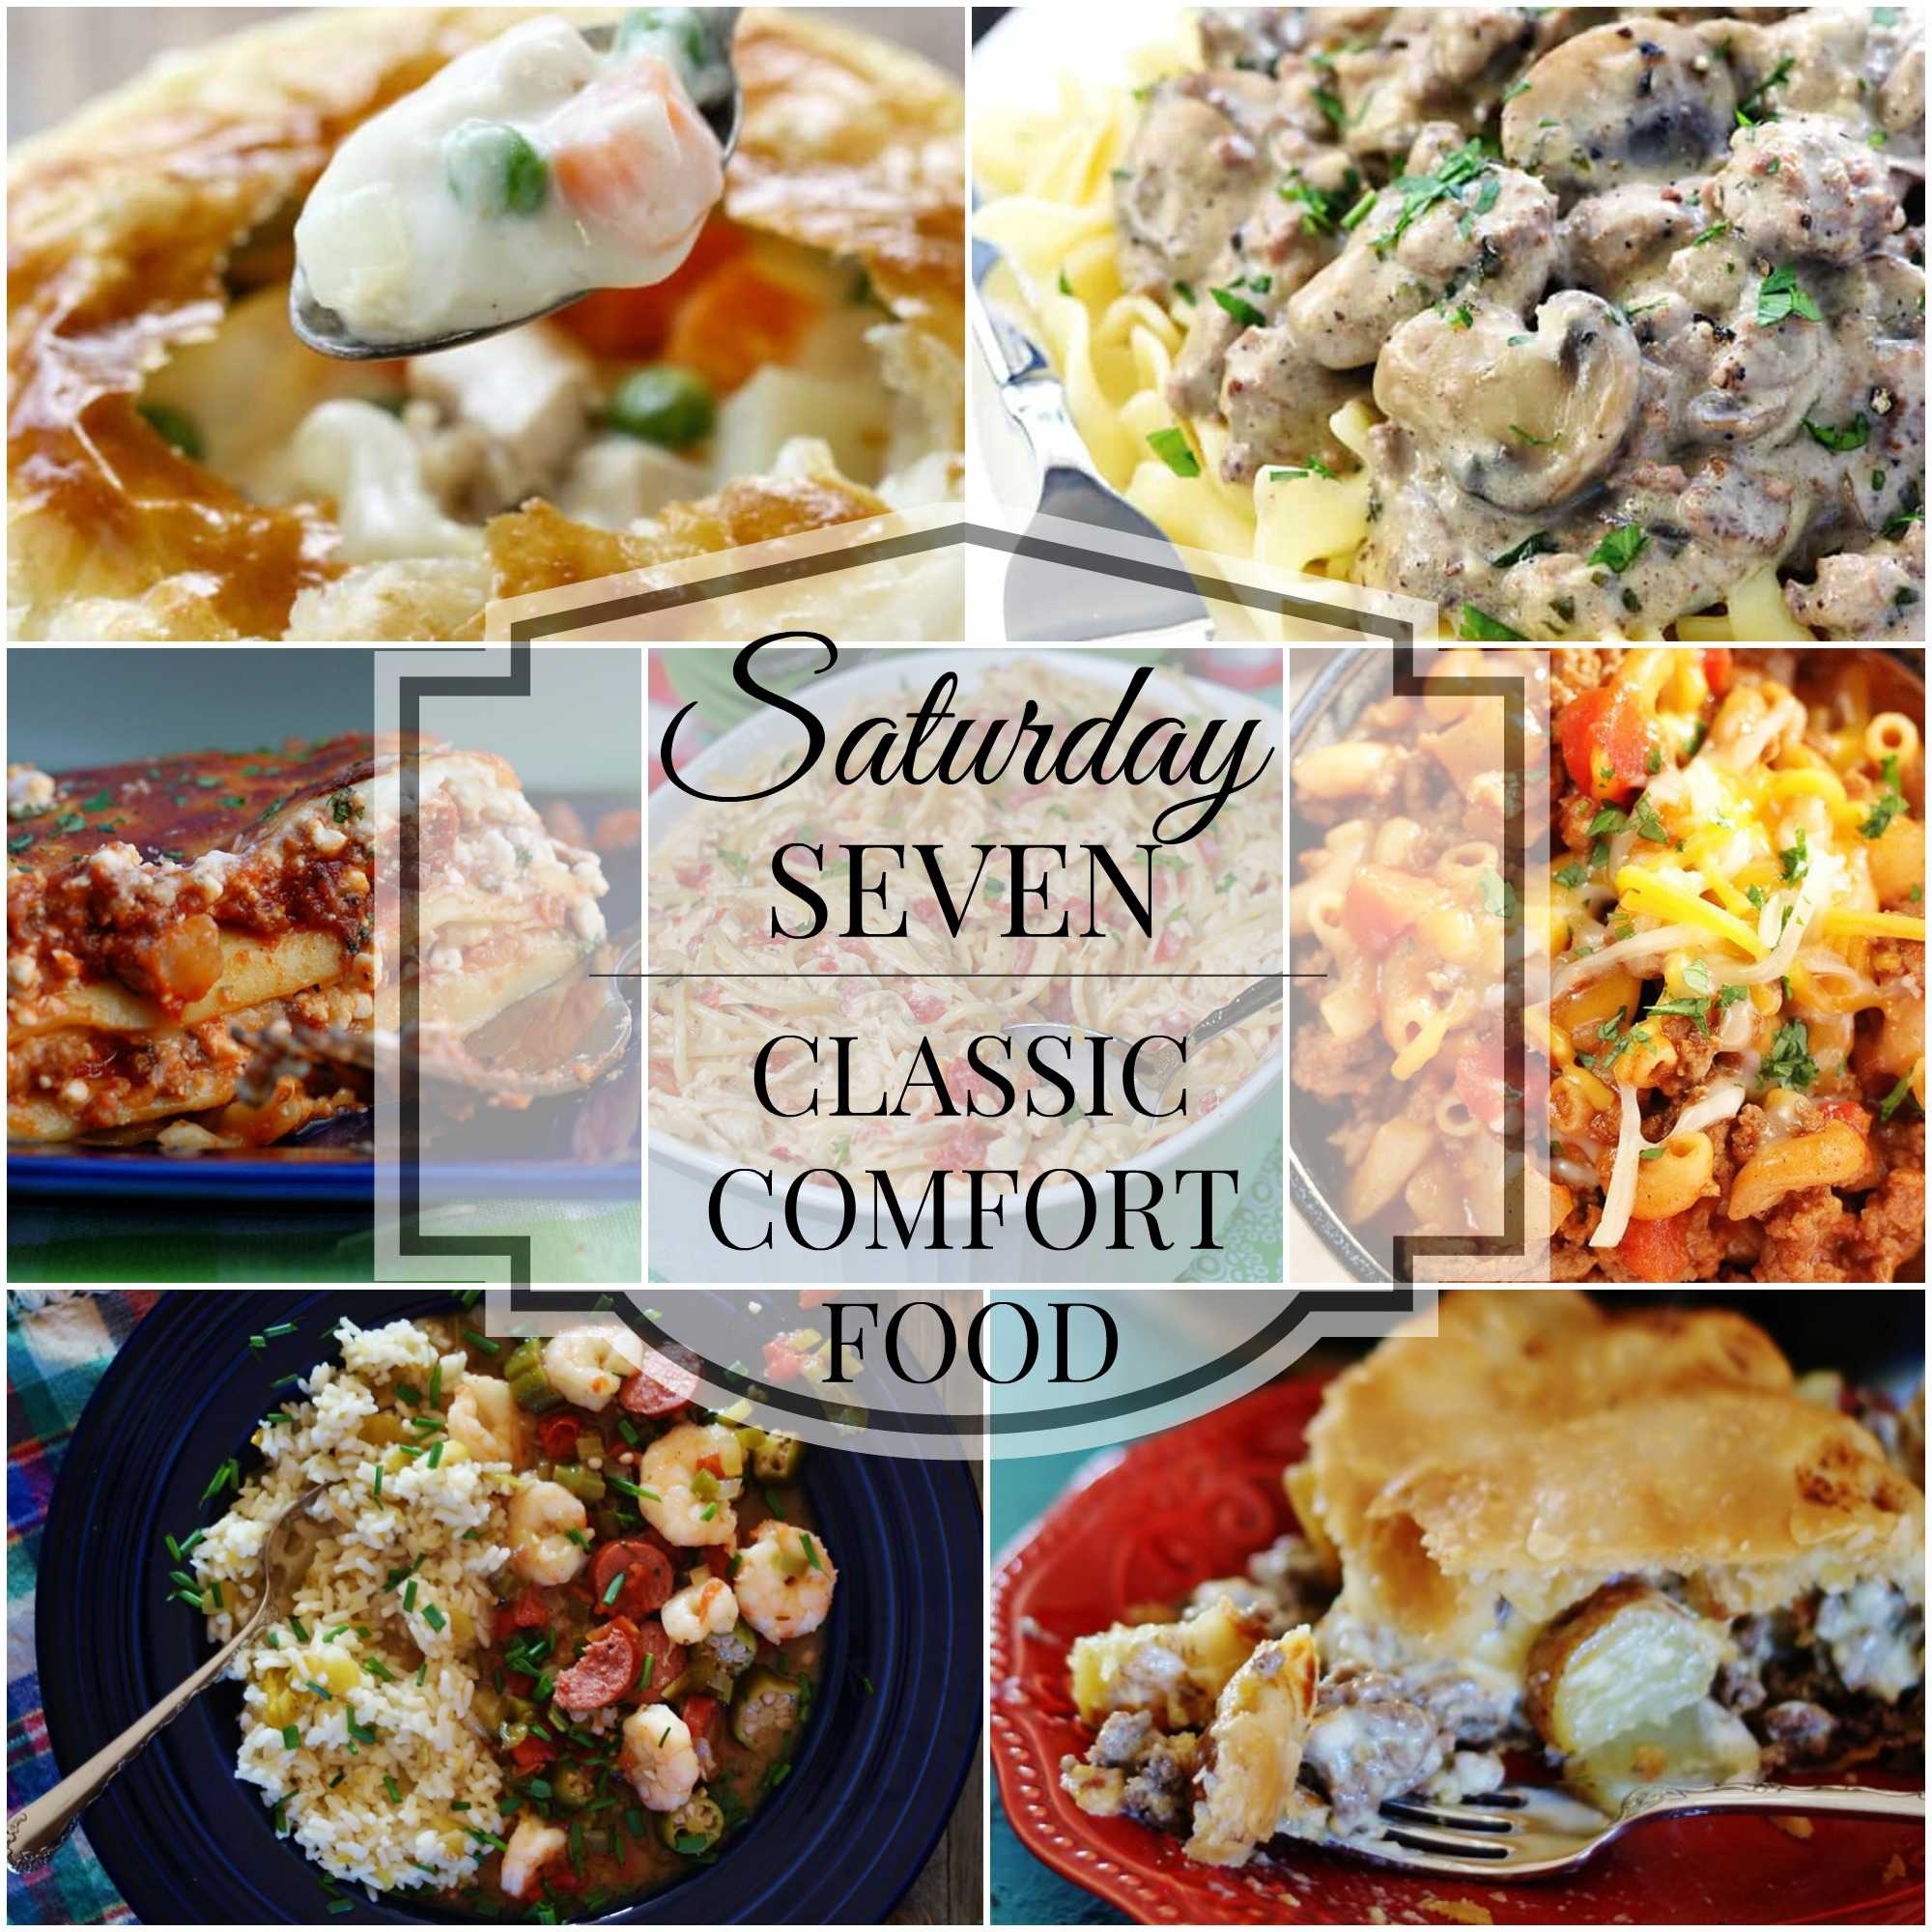 Saturday Seven Comfort Food Collage